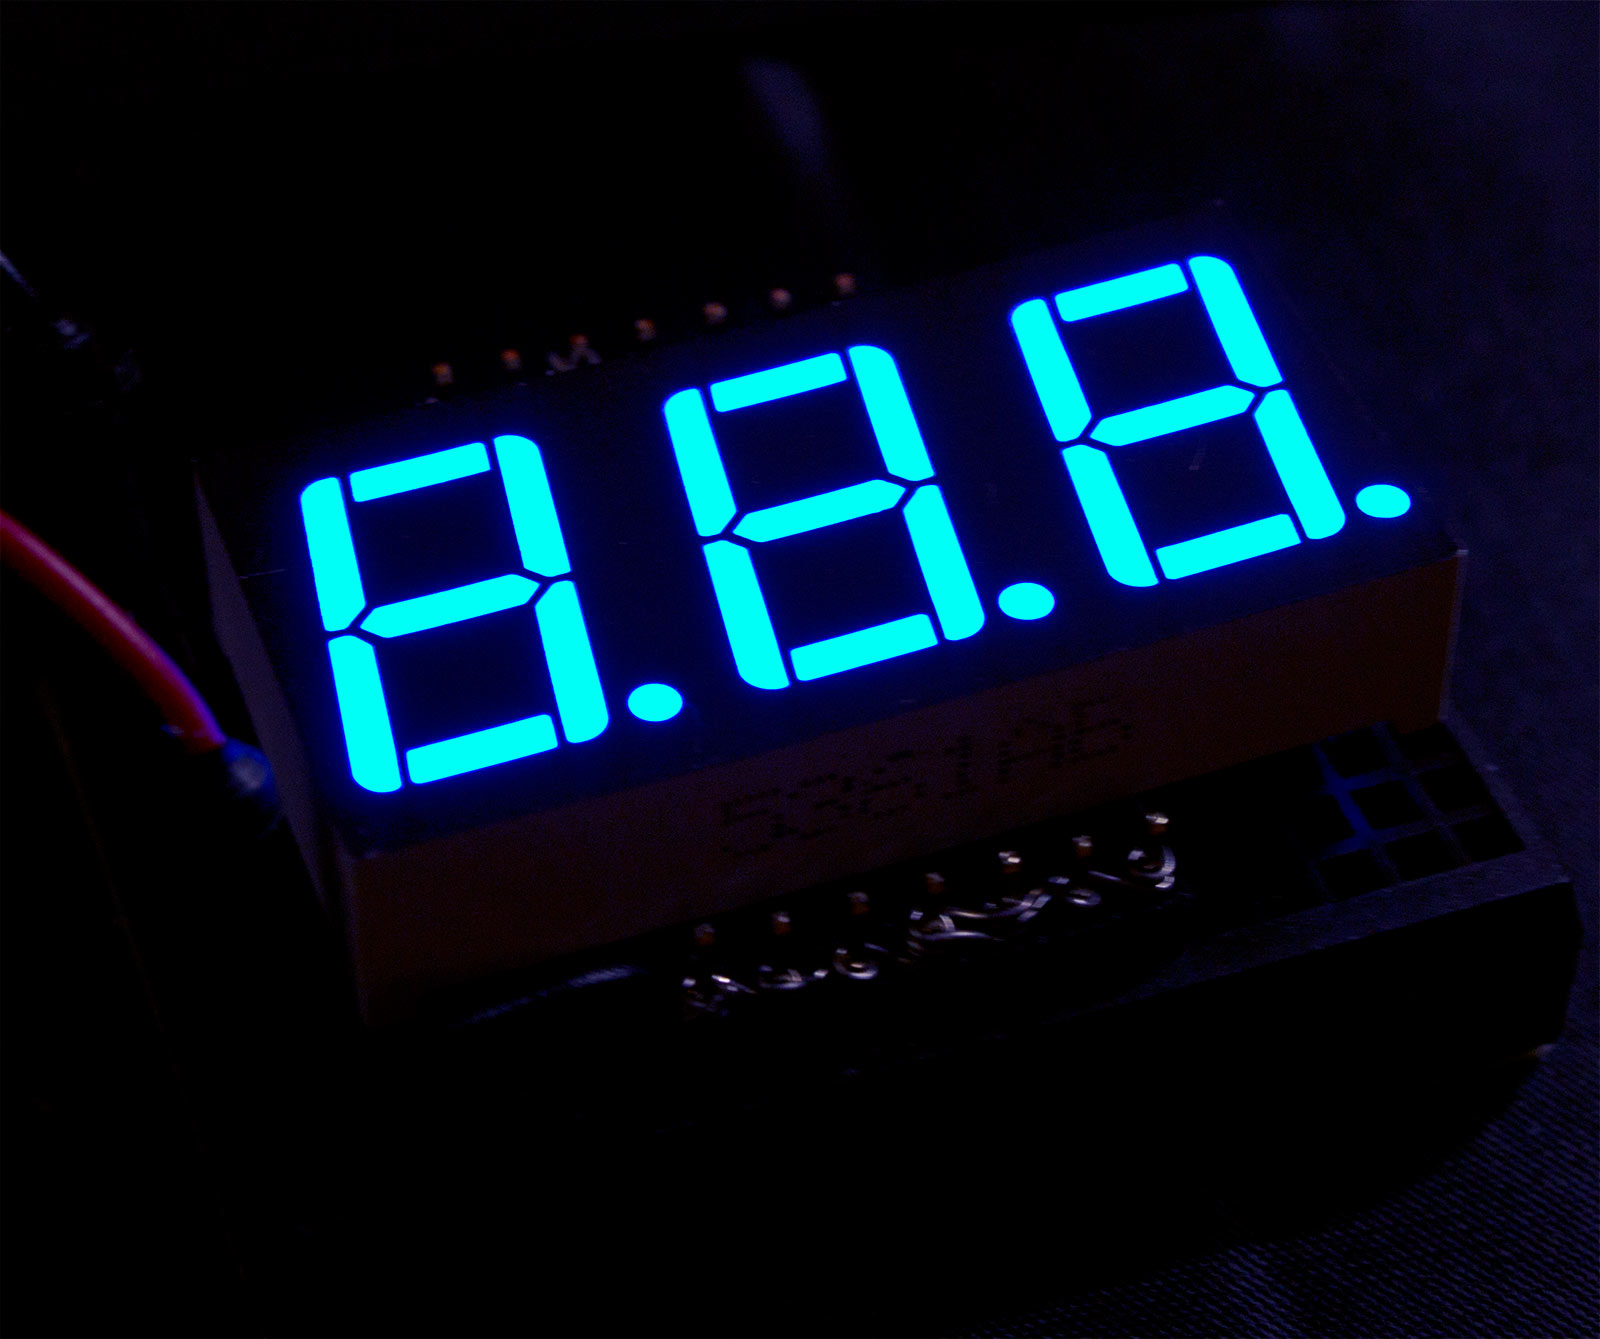 Blue 7 Segment Display